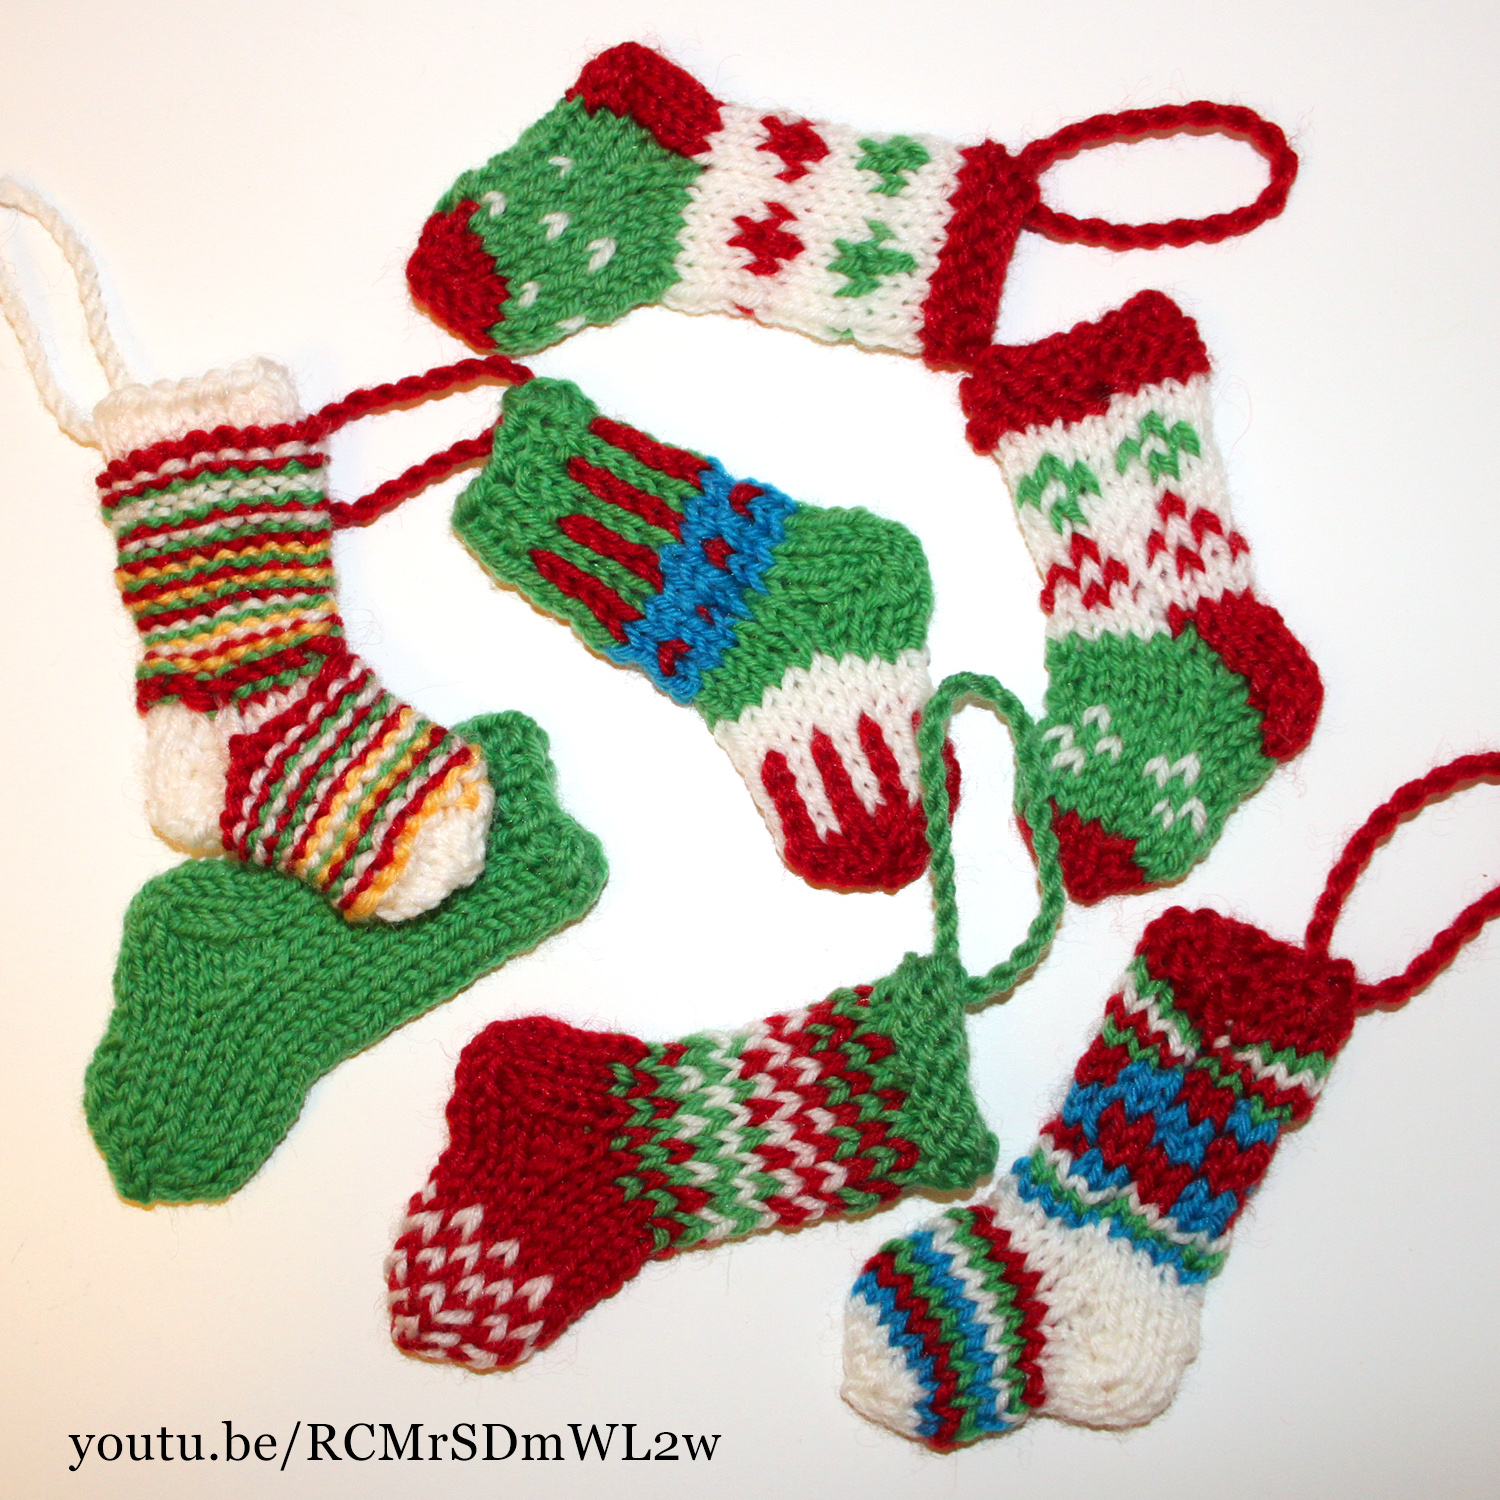 Knitted mini Christmas stockings - Knit & Crochet Christmas